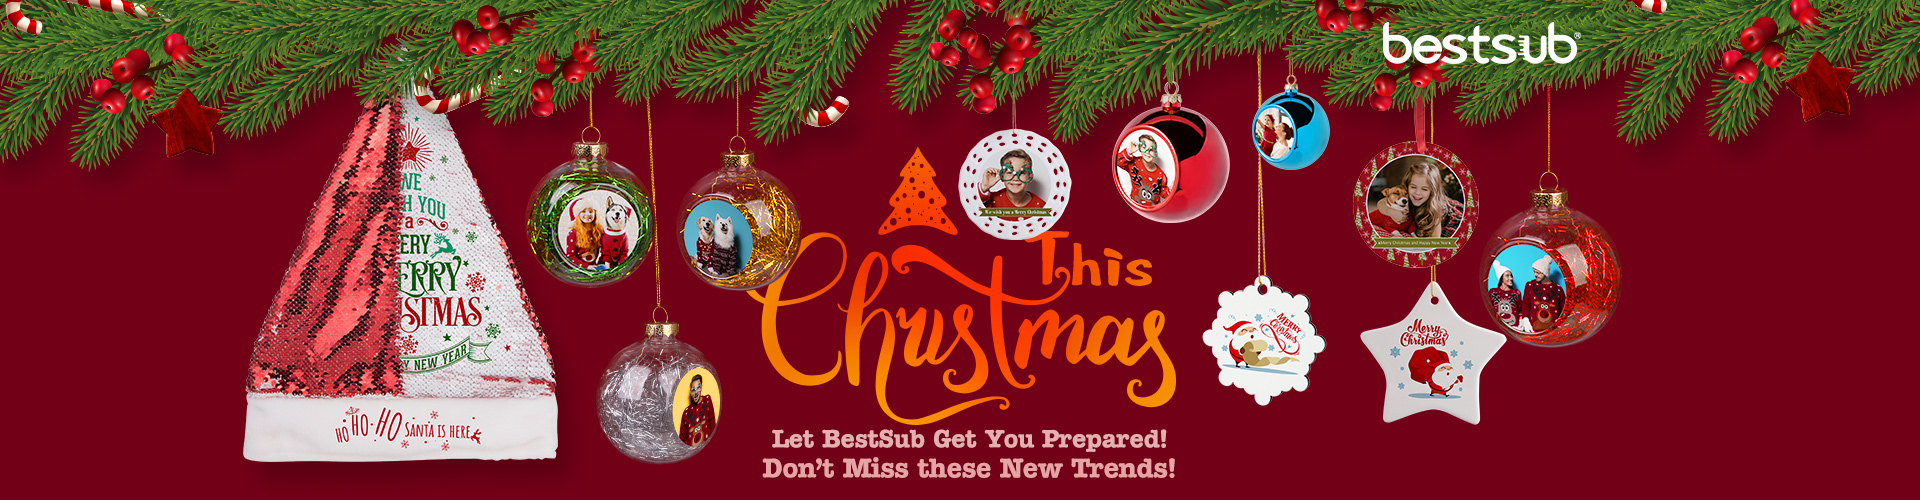 2019-8-8_Come_on_and_Catch_these_New_Christmas_Trends_new_web